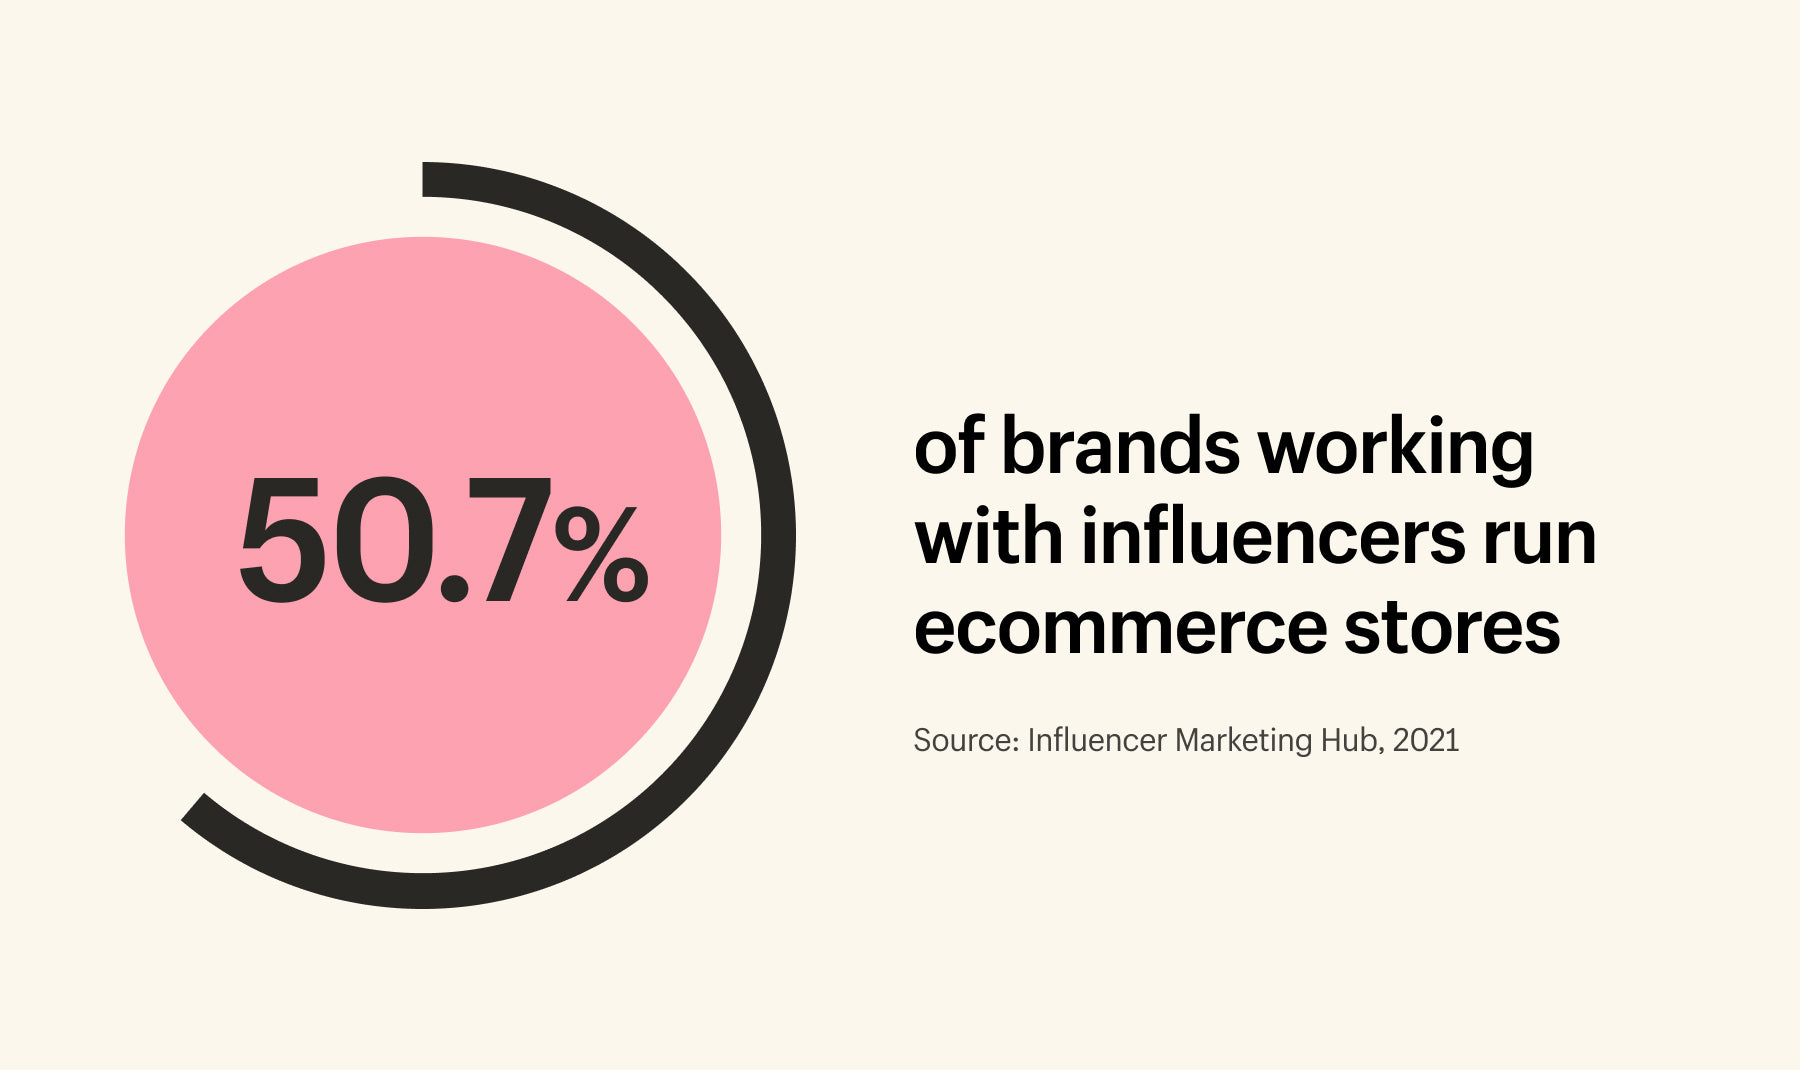 50.7% of brands working with influencers have ecommerce stores